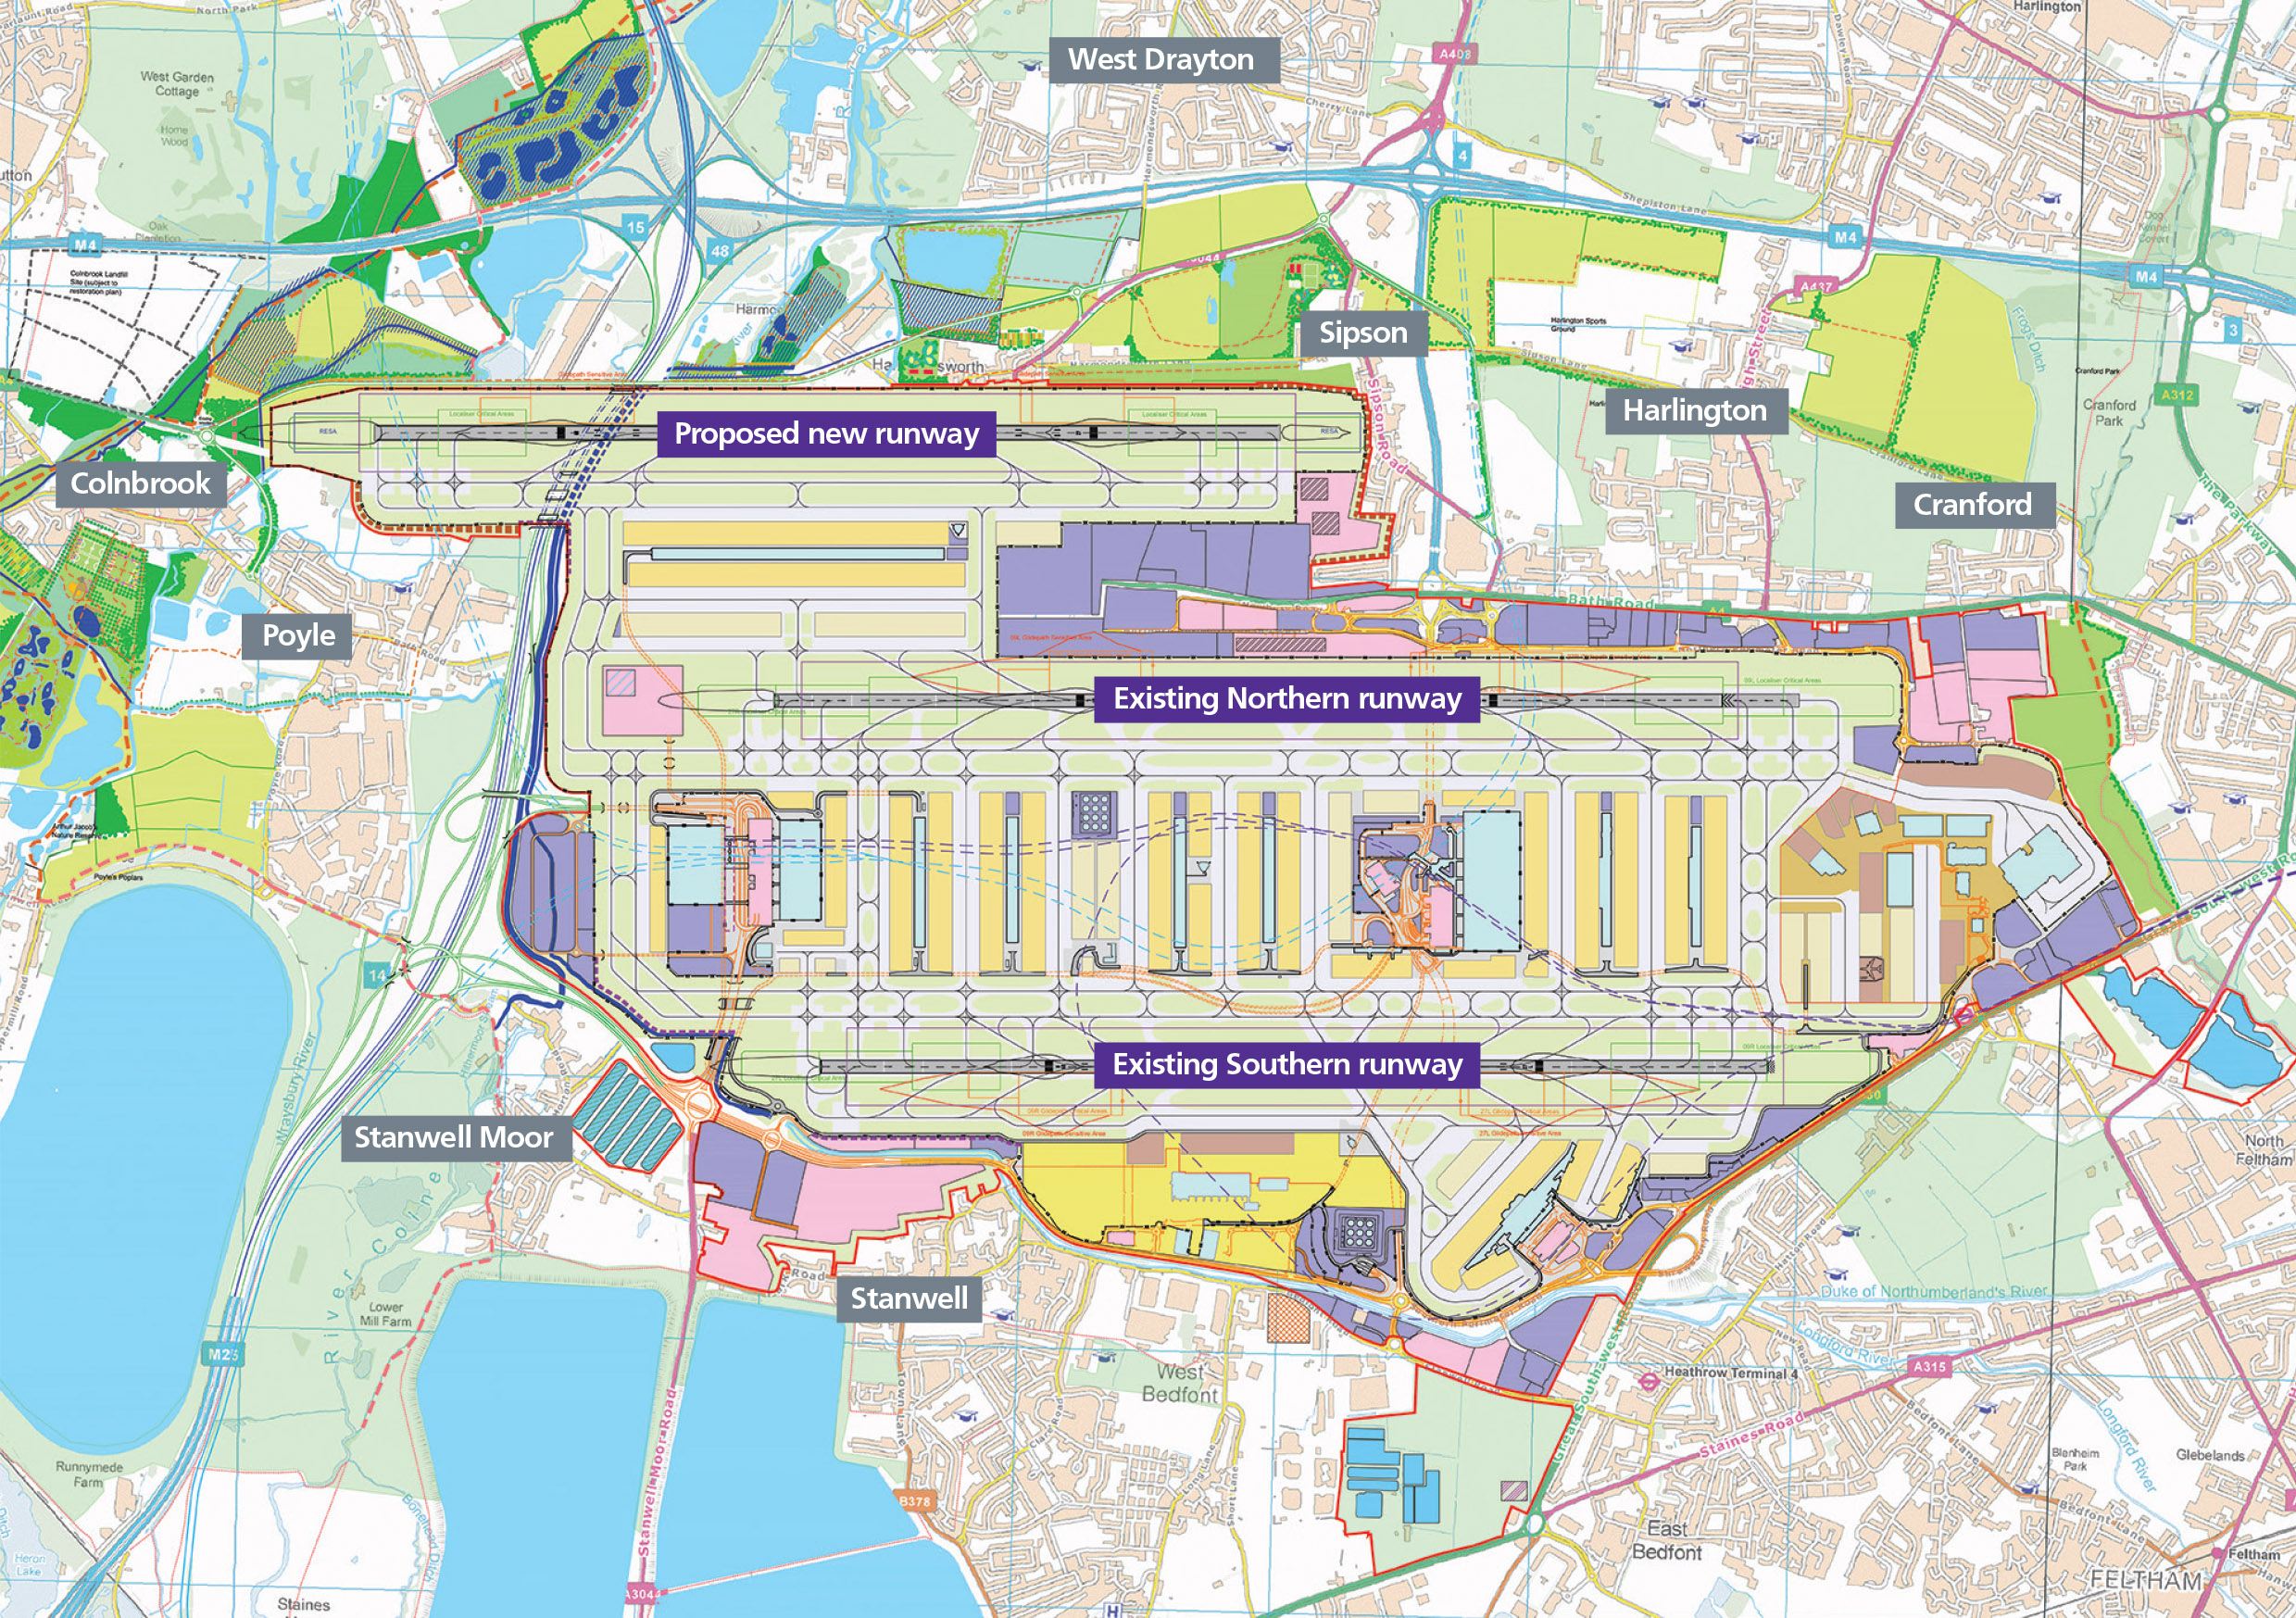 UK Government Confirms Airport Expansion At Heathrow